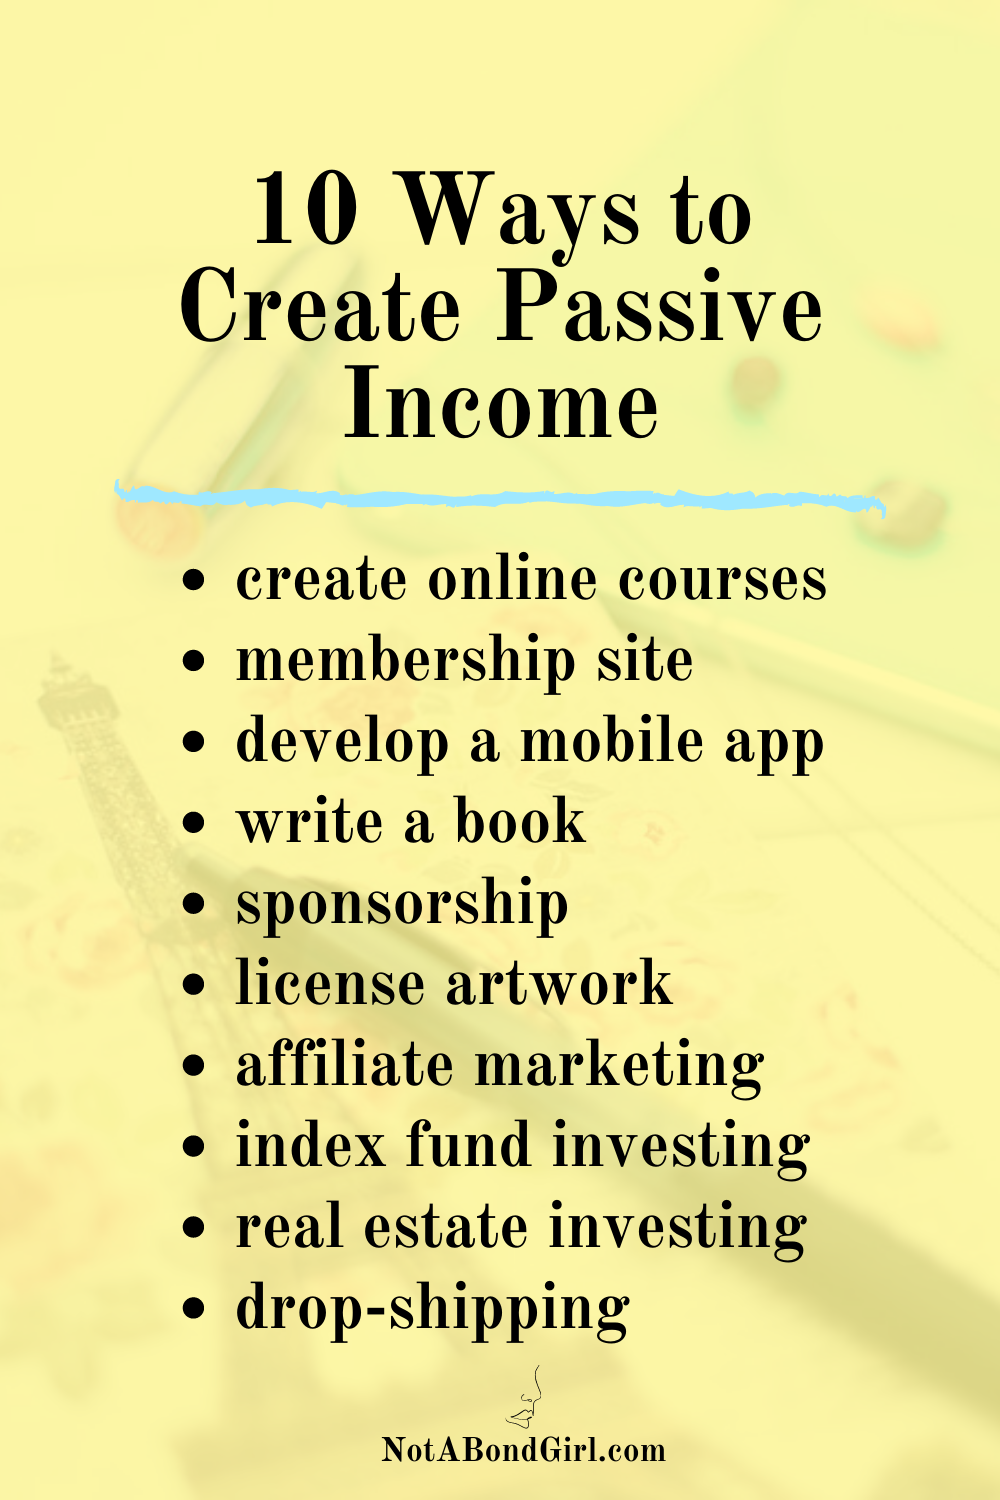 How I Live Off My Passive Income Streams